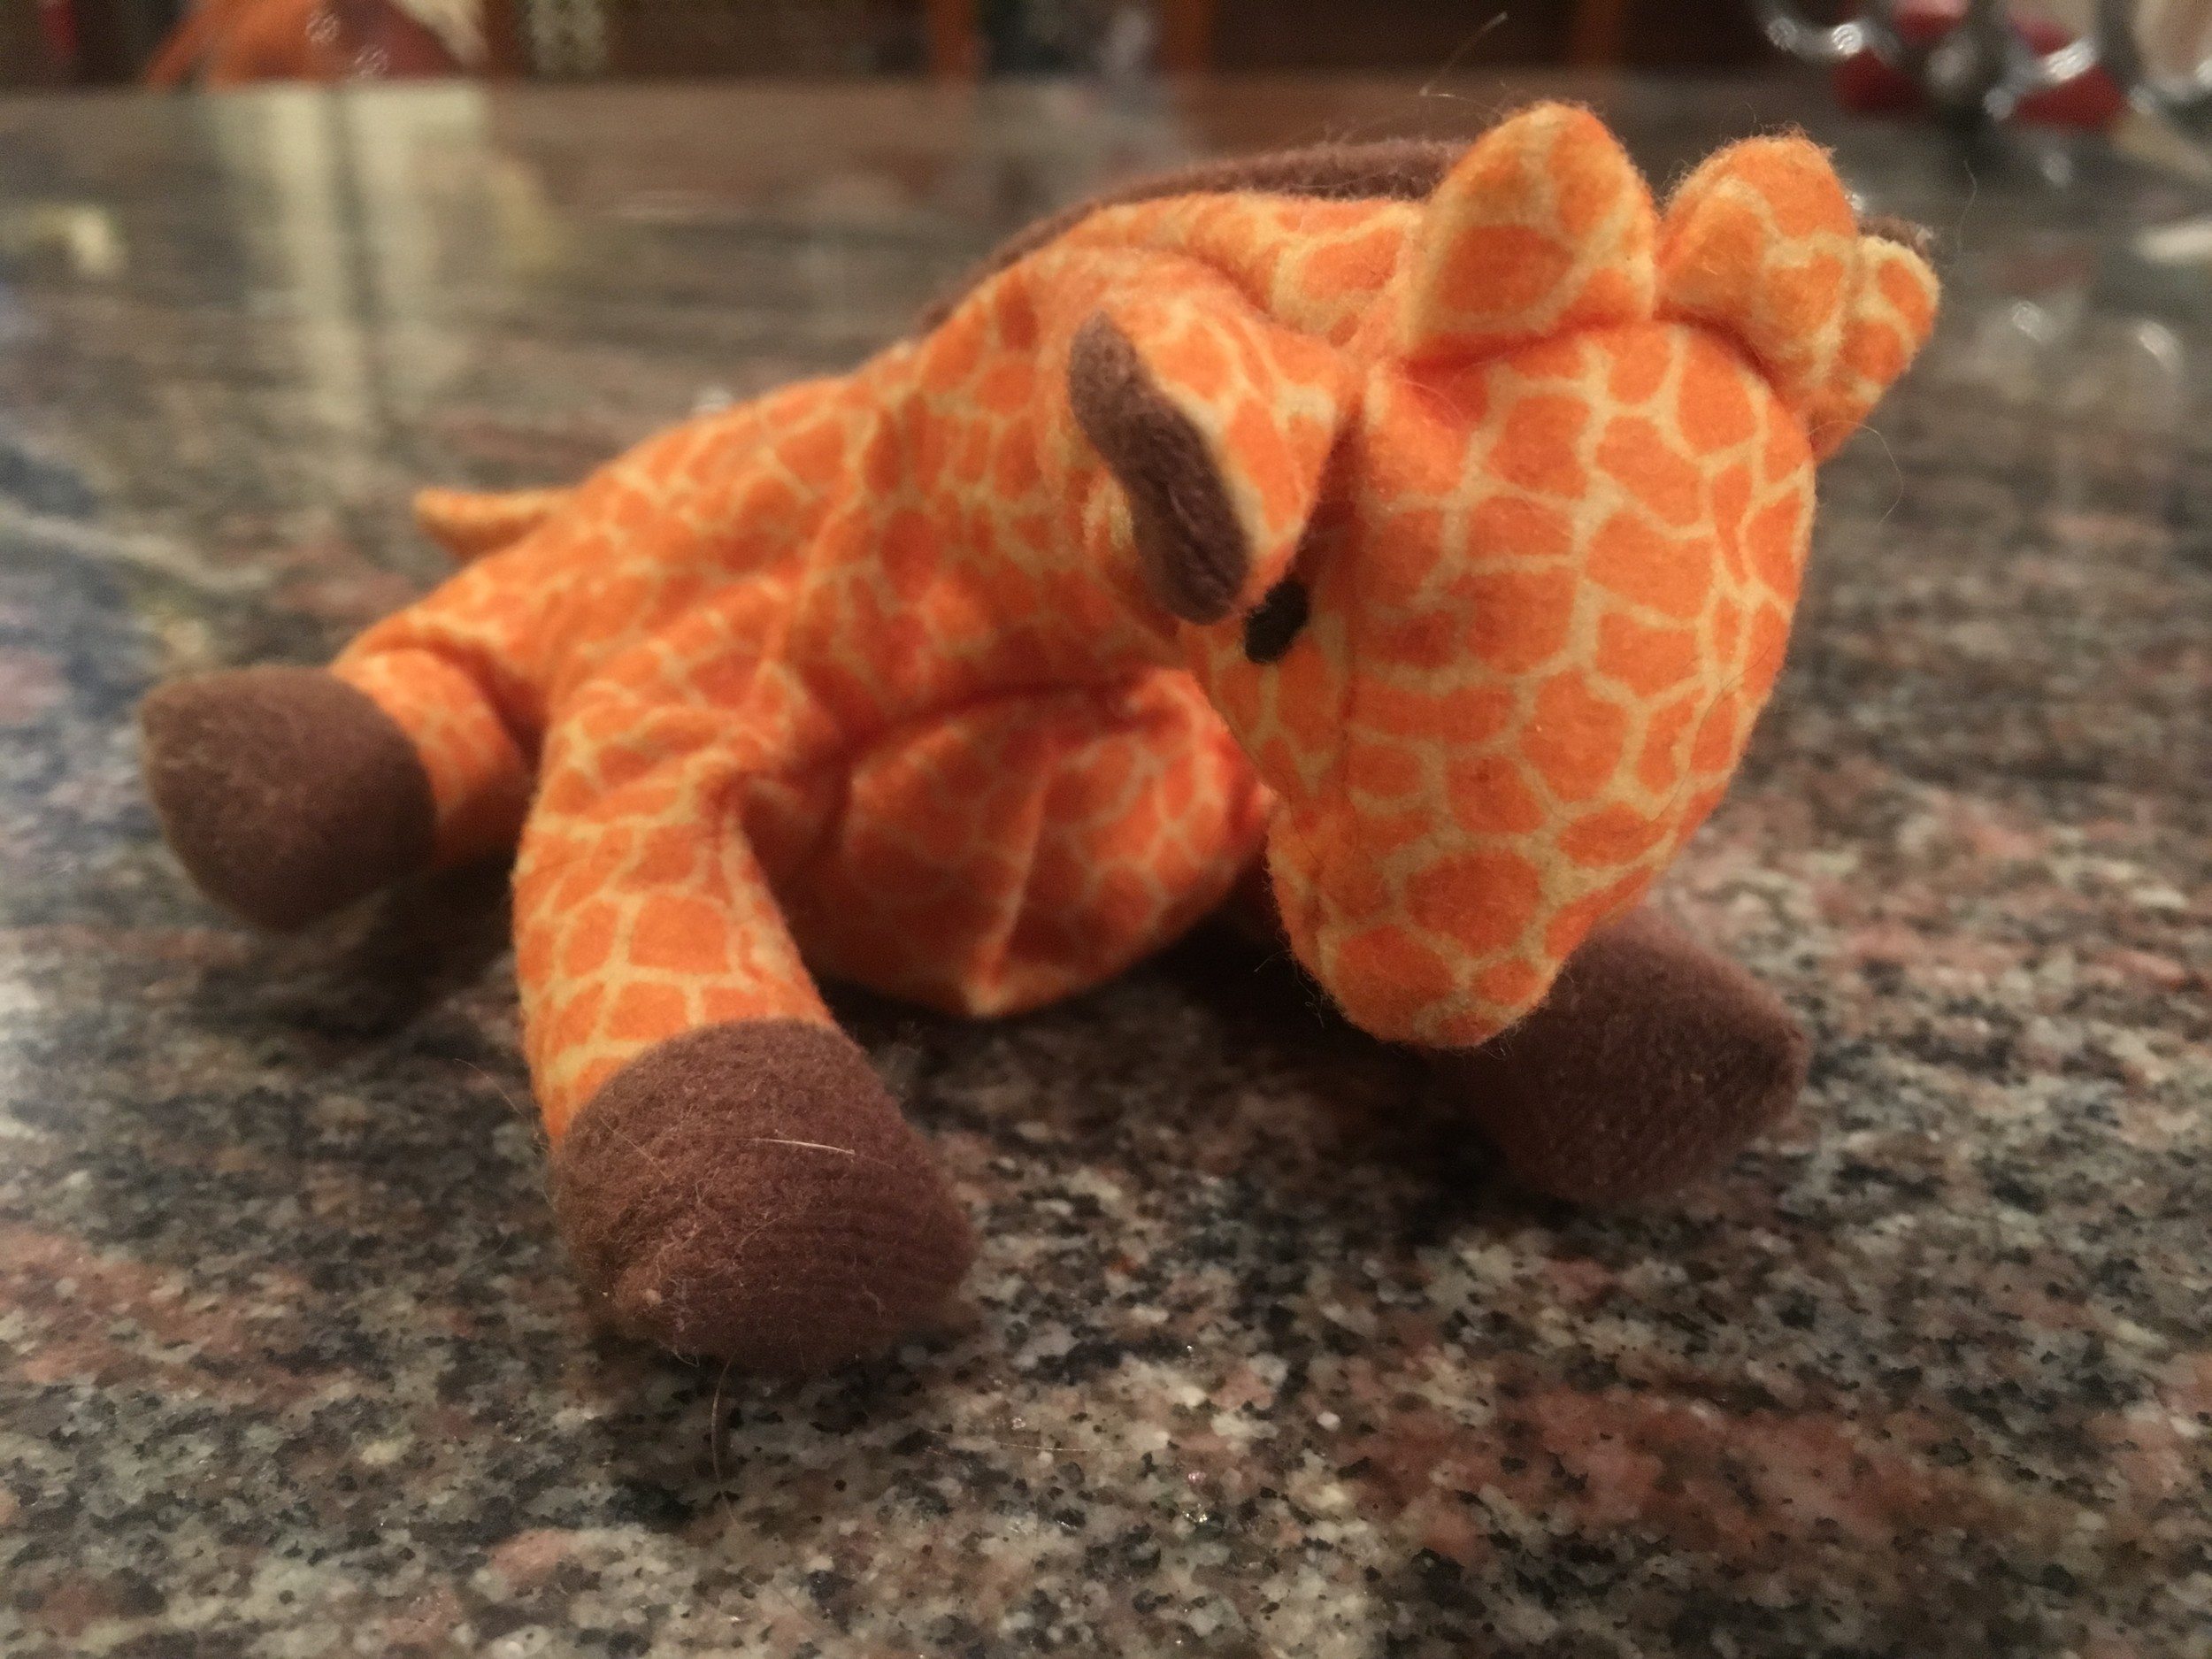 Renée's collection started with a giraffe that her husband, Harvey, referred to as a stubby.